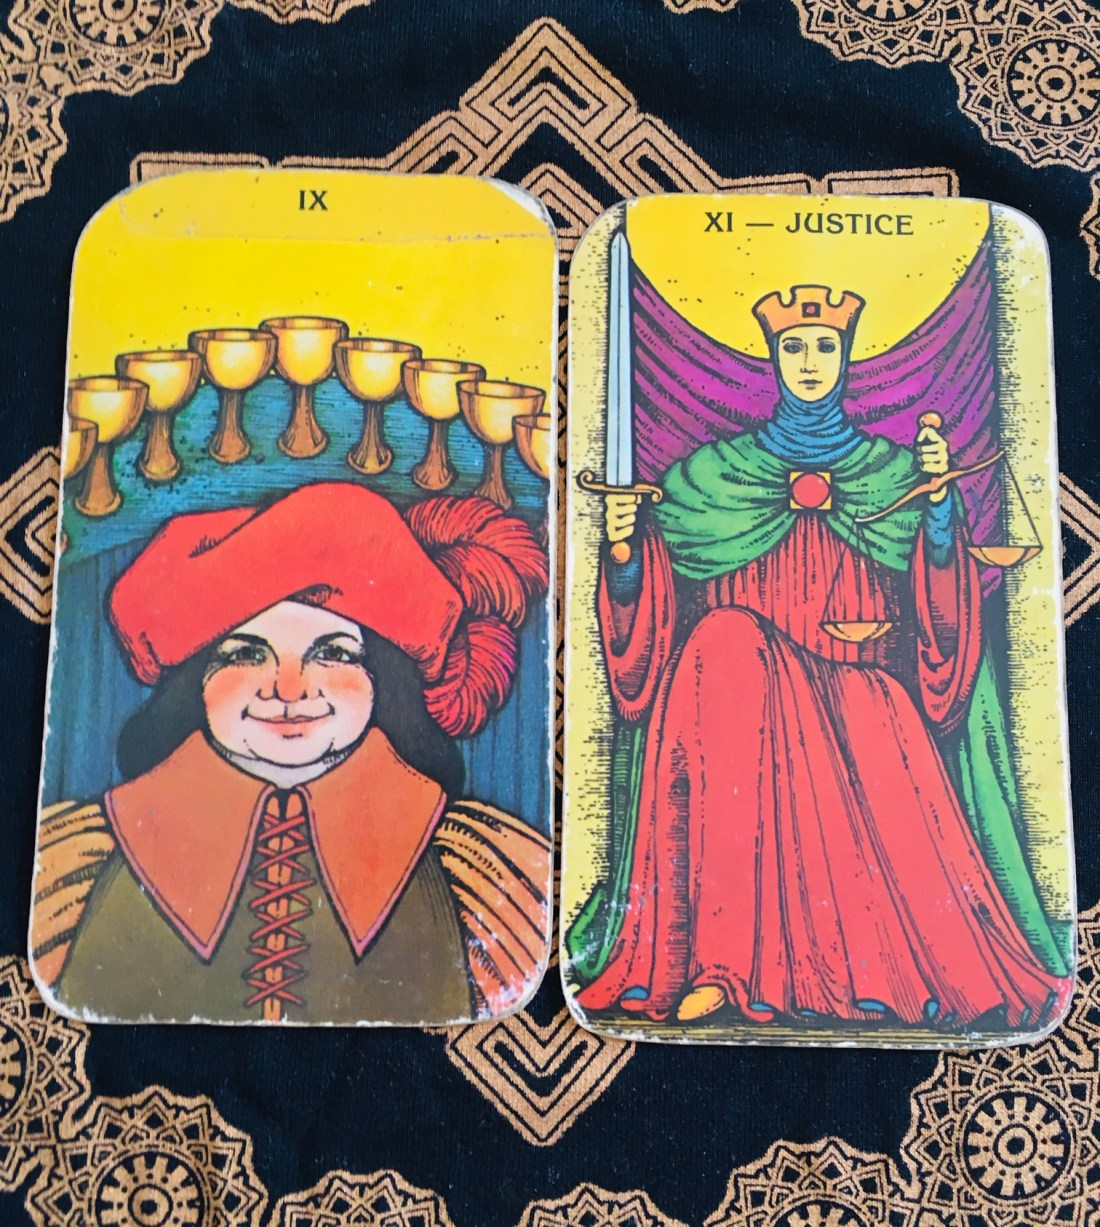 Hard Work. Nine of Cups and Justice Tarot Cards.